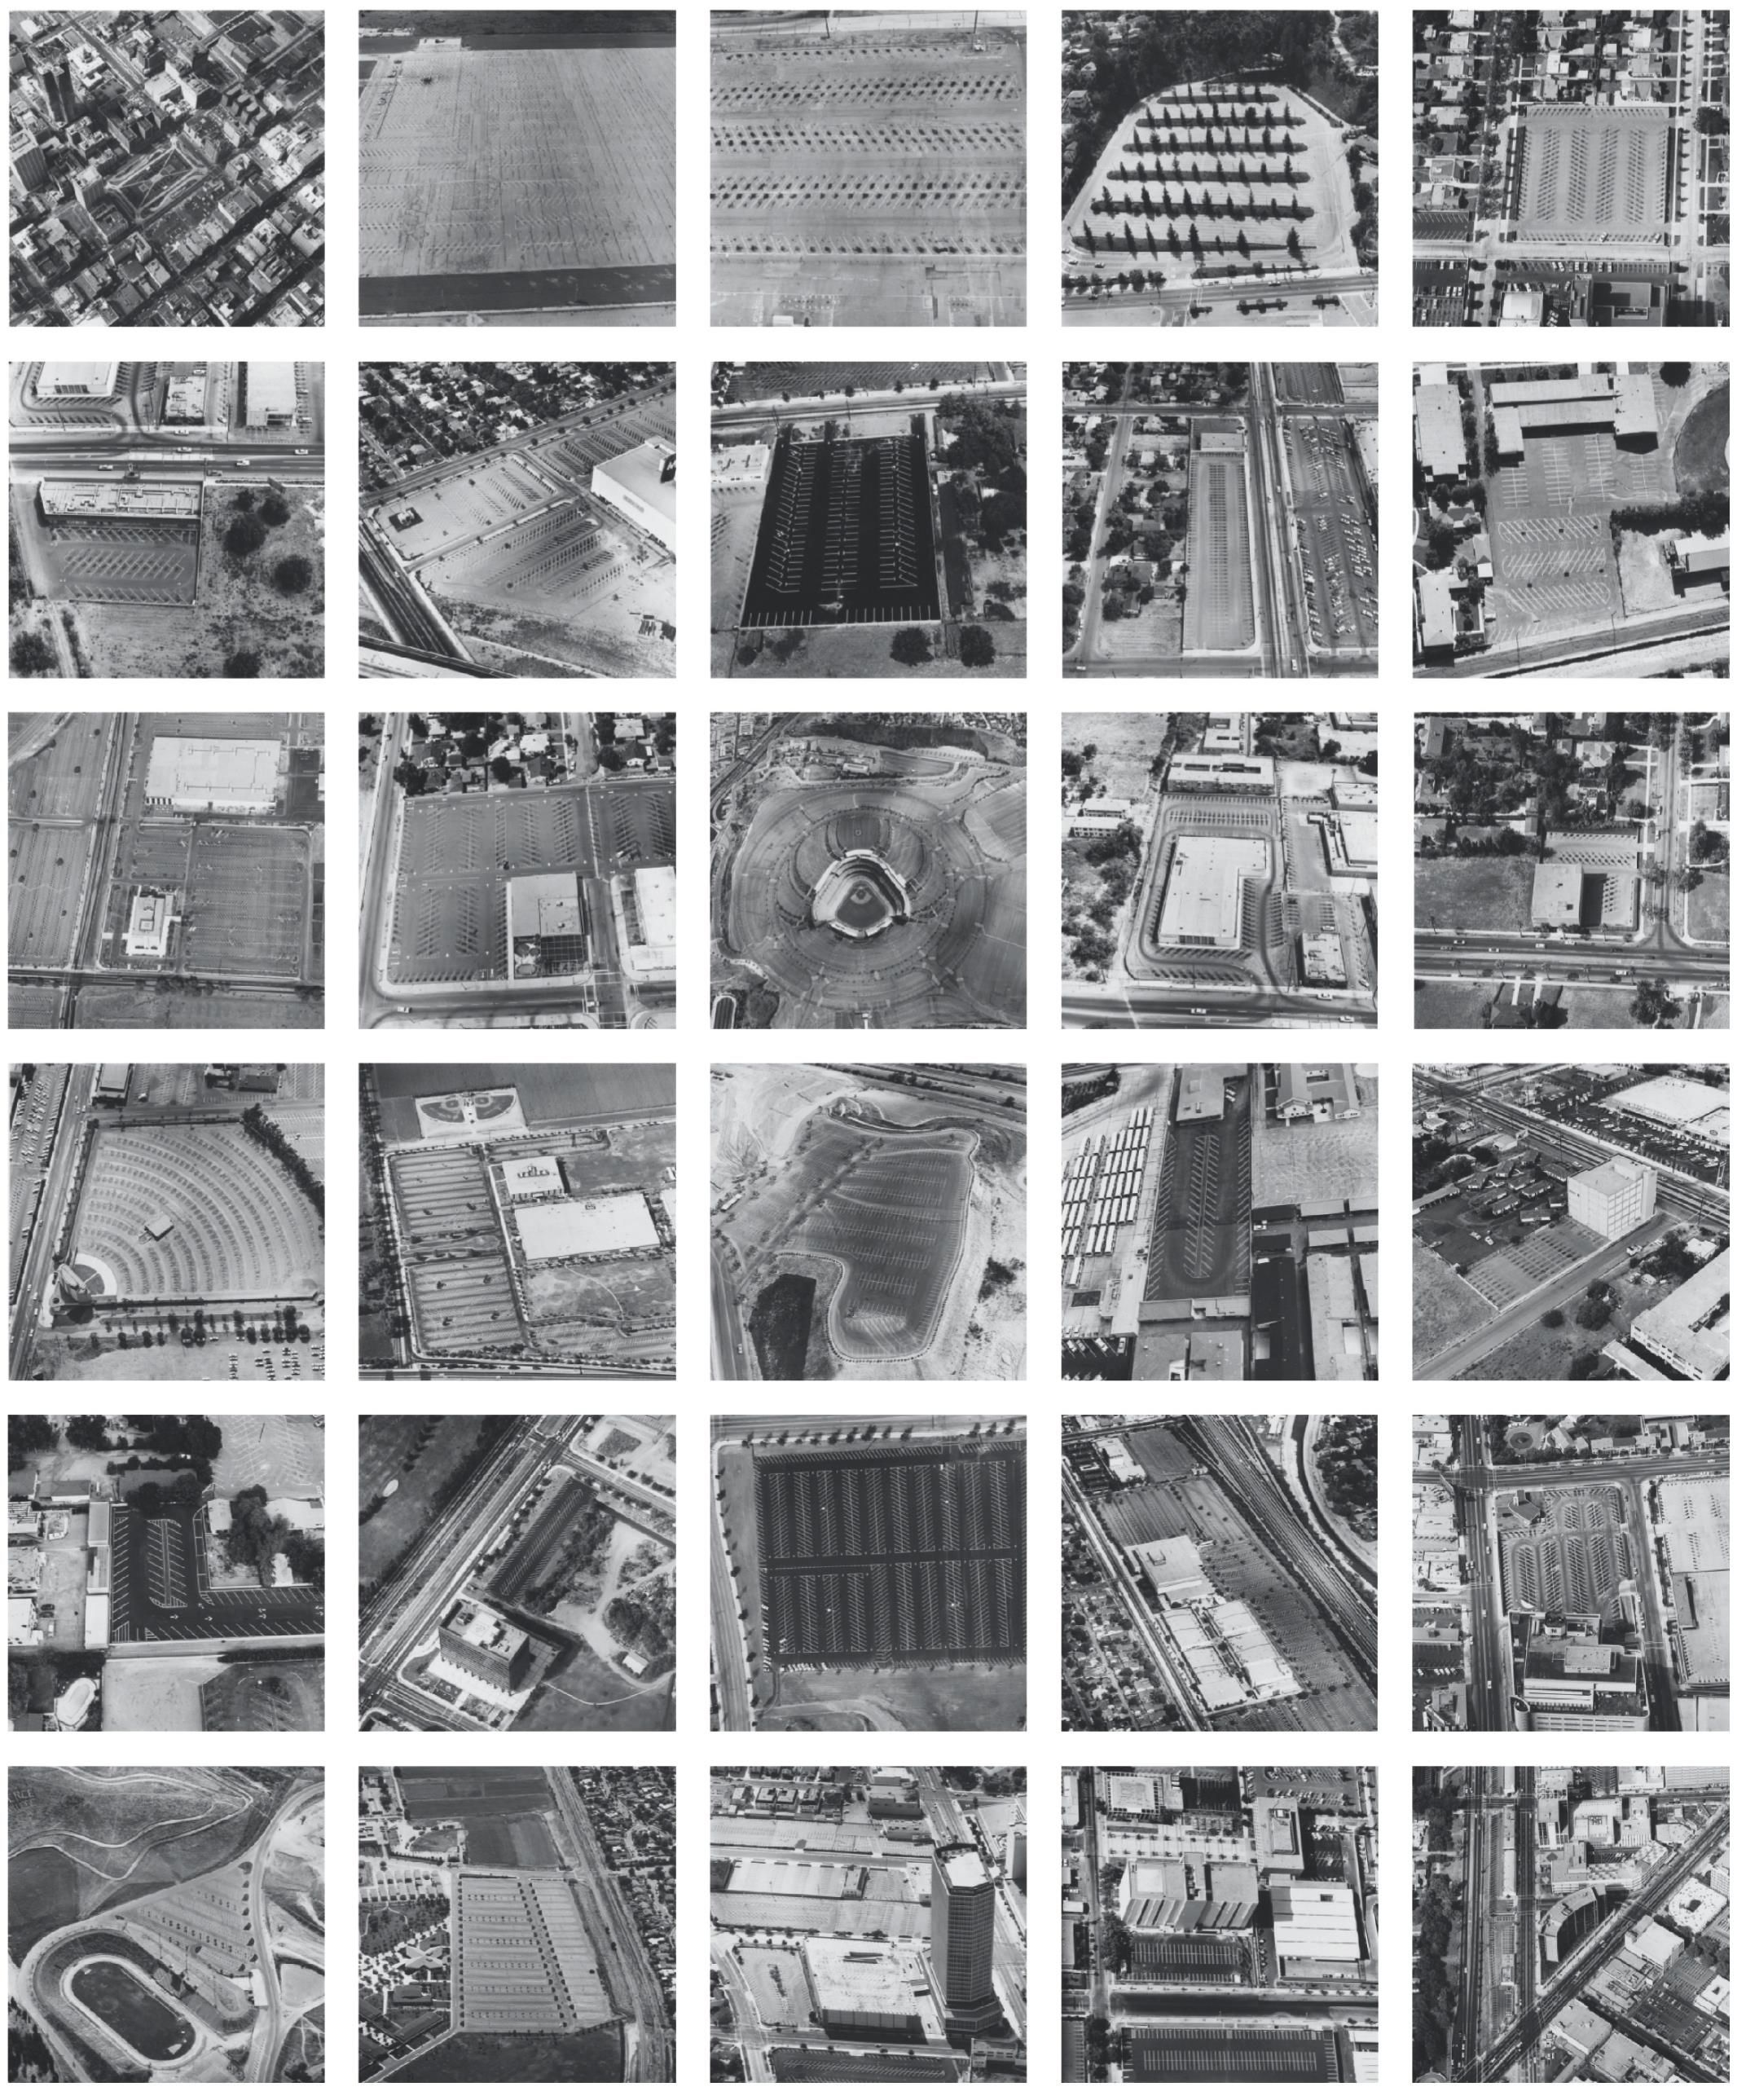 Thirtyfour Parking Lots In Los Angeles, 1967